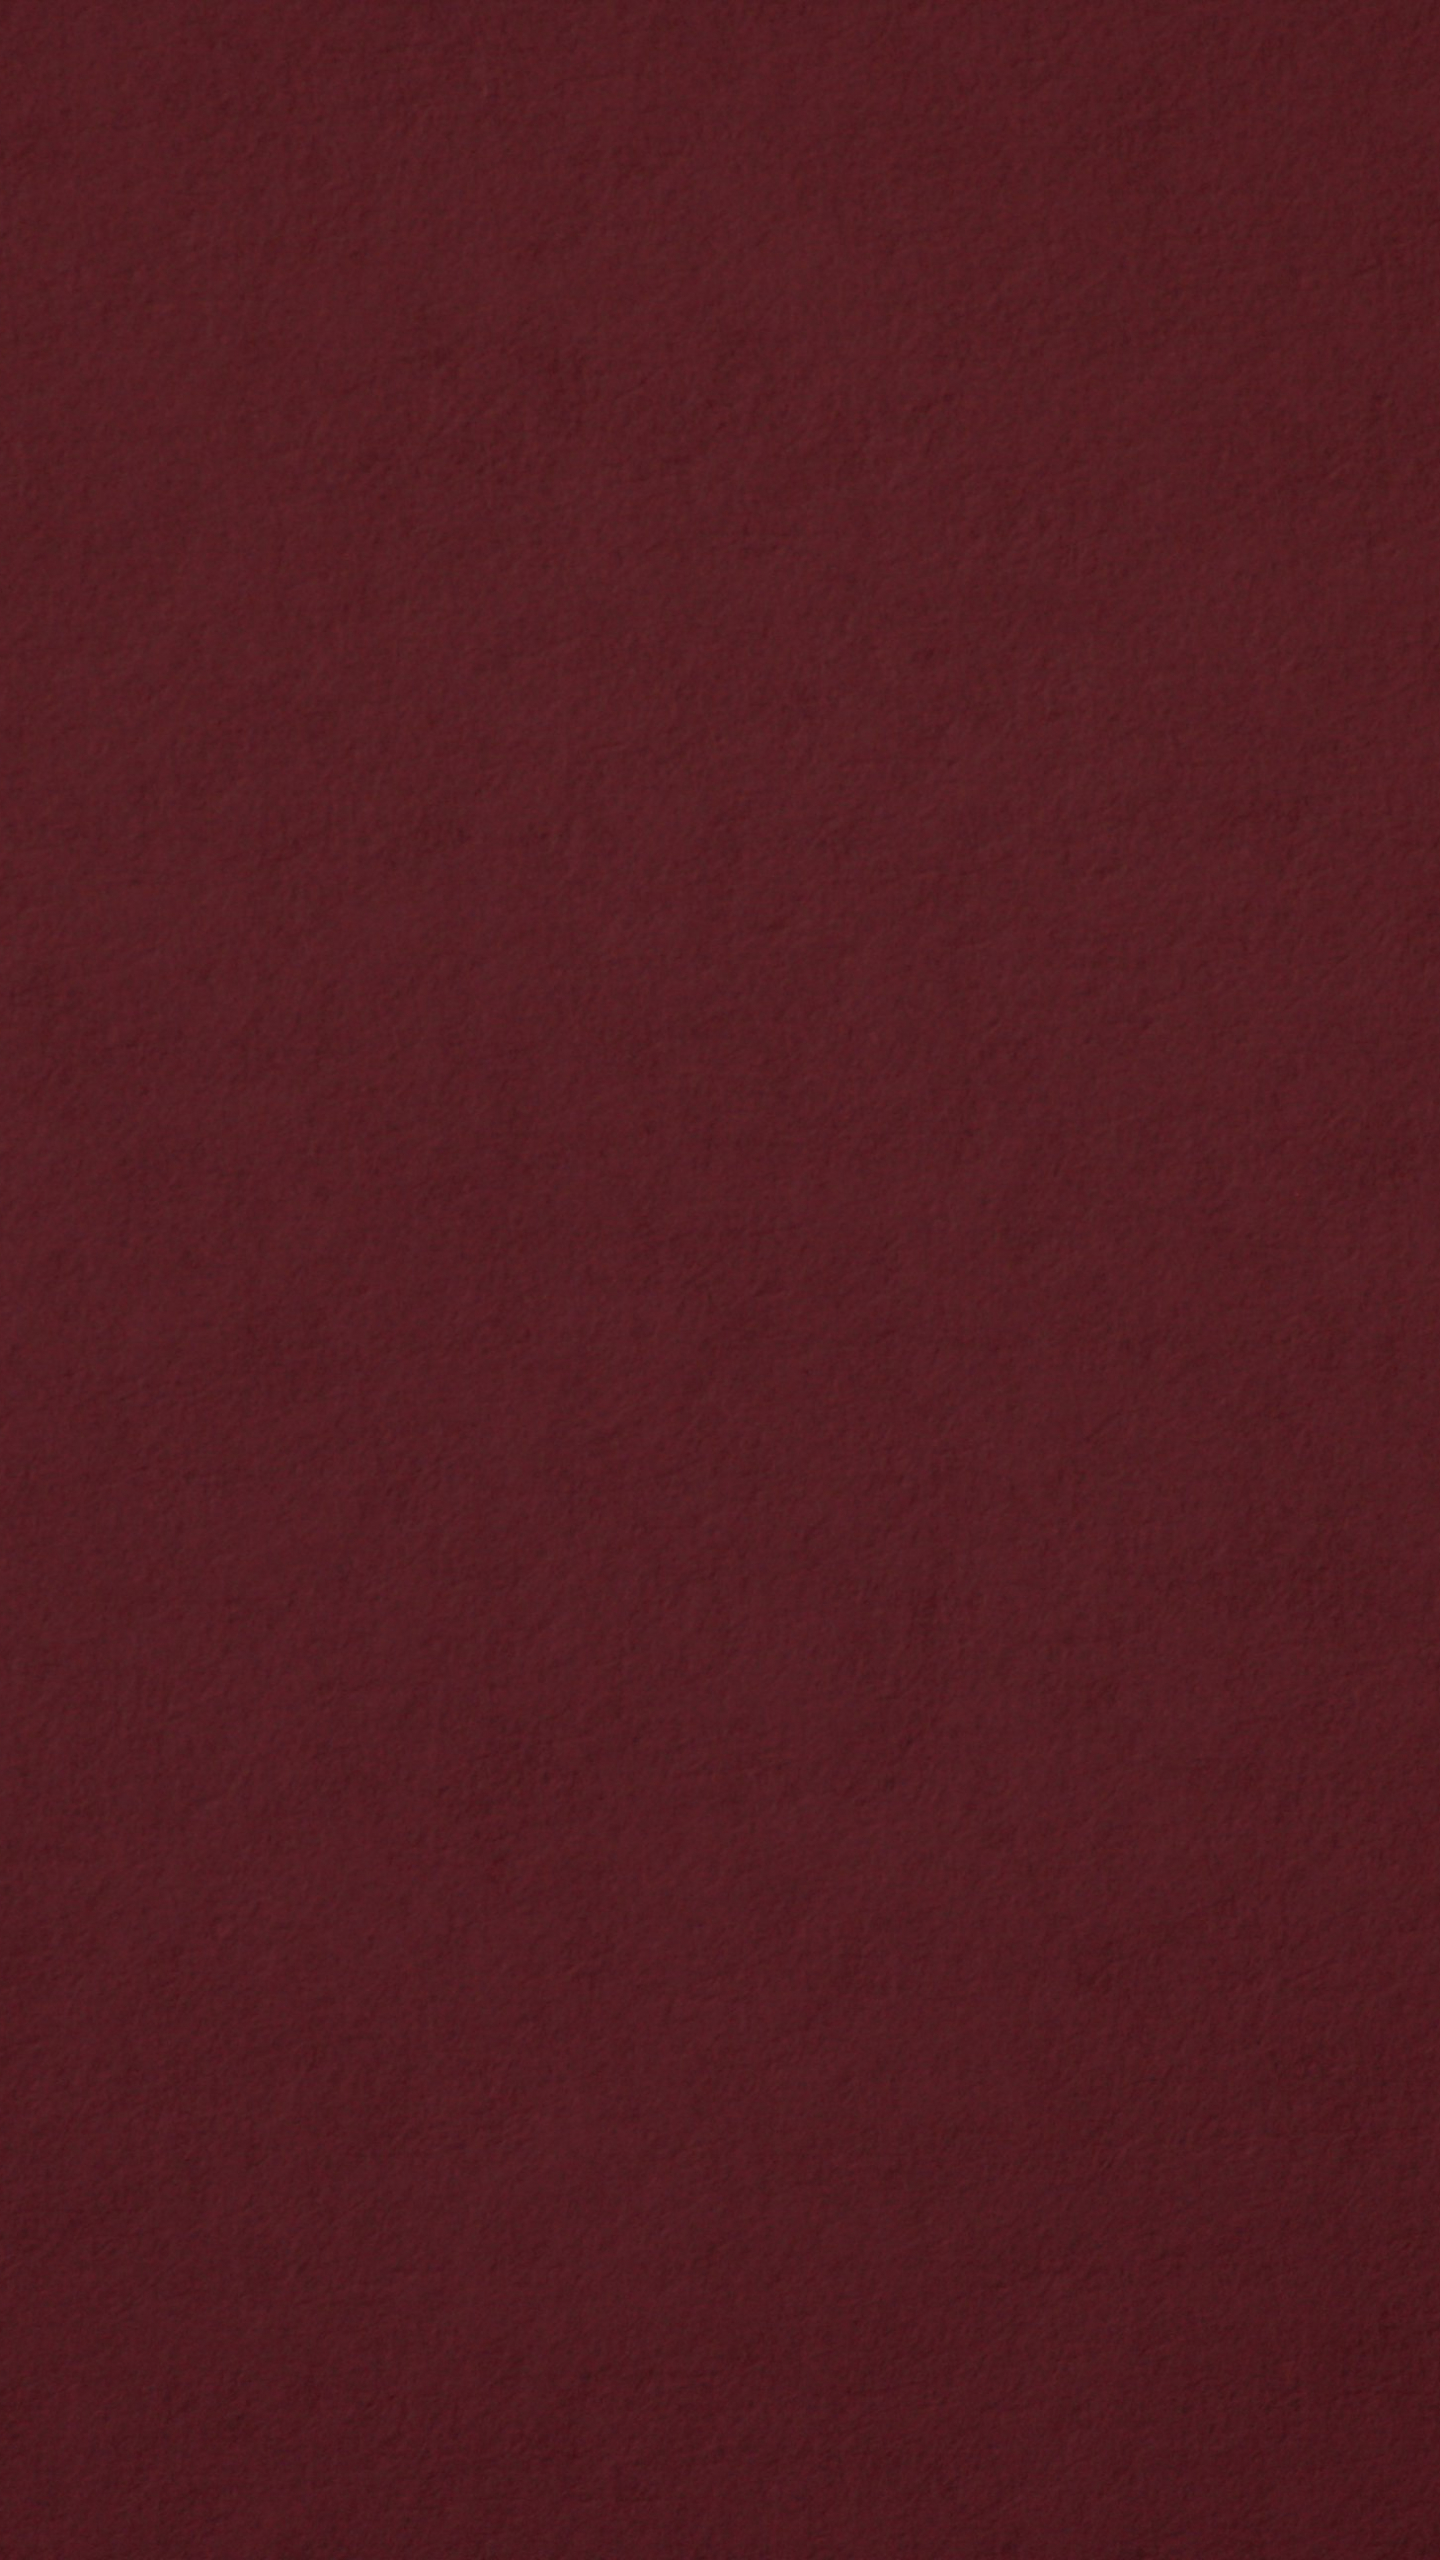 free download maroon paper texture high resolution photo dimensions 3888 3888x2592 for your desktop mobile tablet explore 76 maroon wallpaper maroon 5 wallpaper desktop maroon wallpaper tumblr maroon wallpaper border free download maroon paper texture high